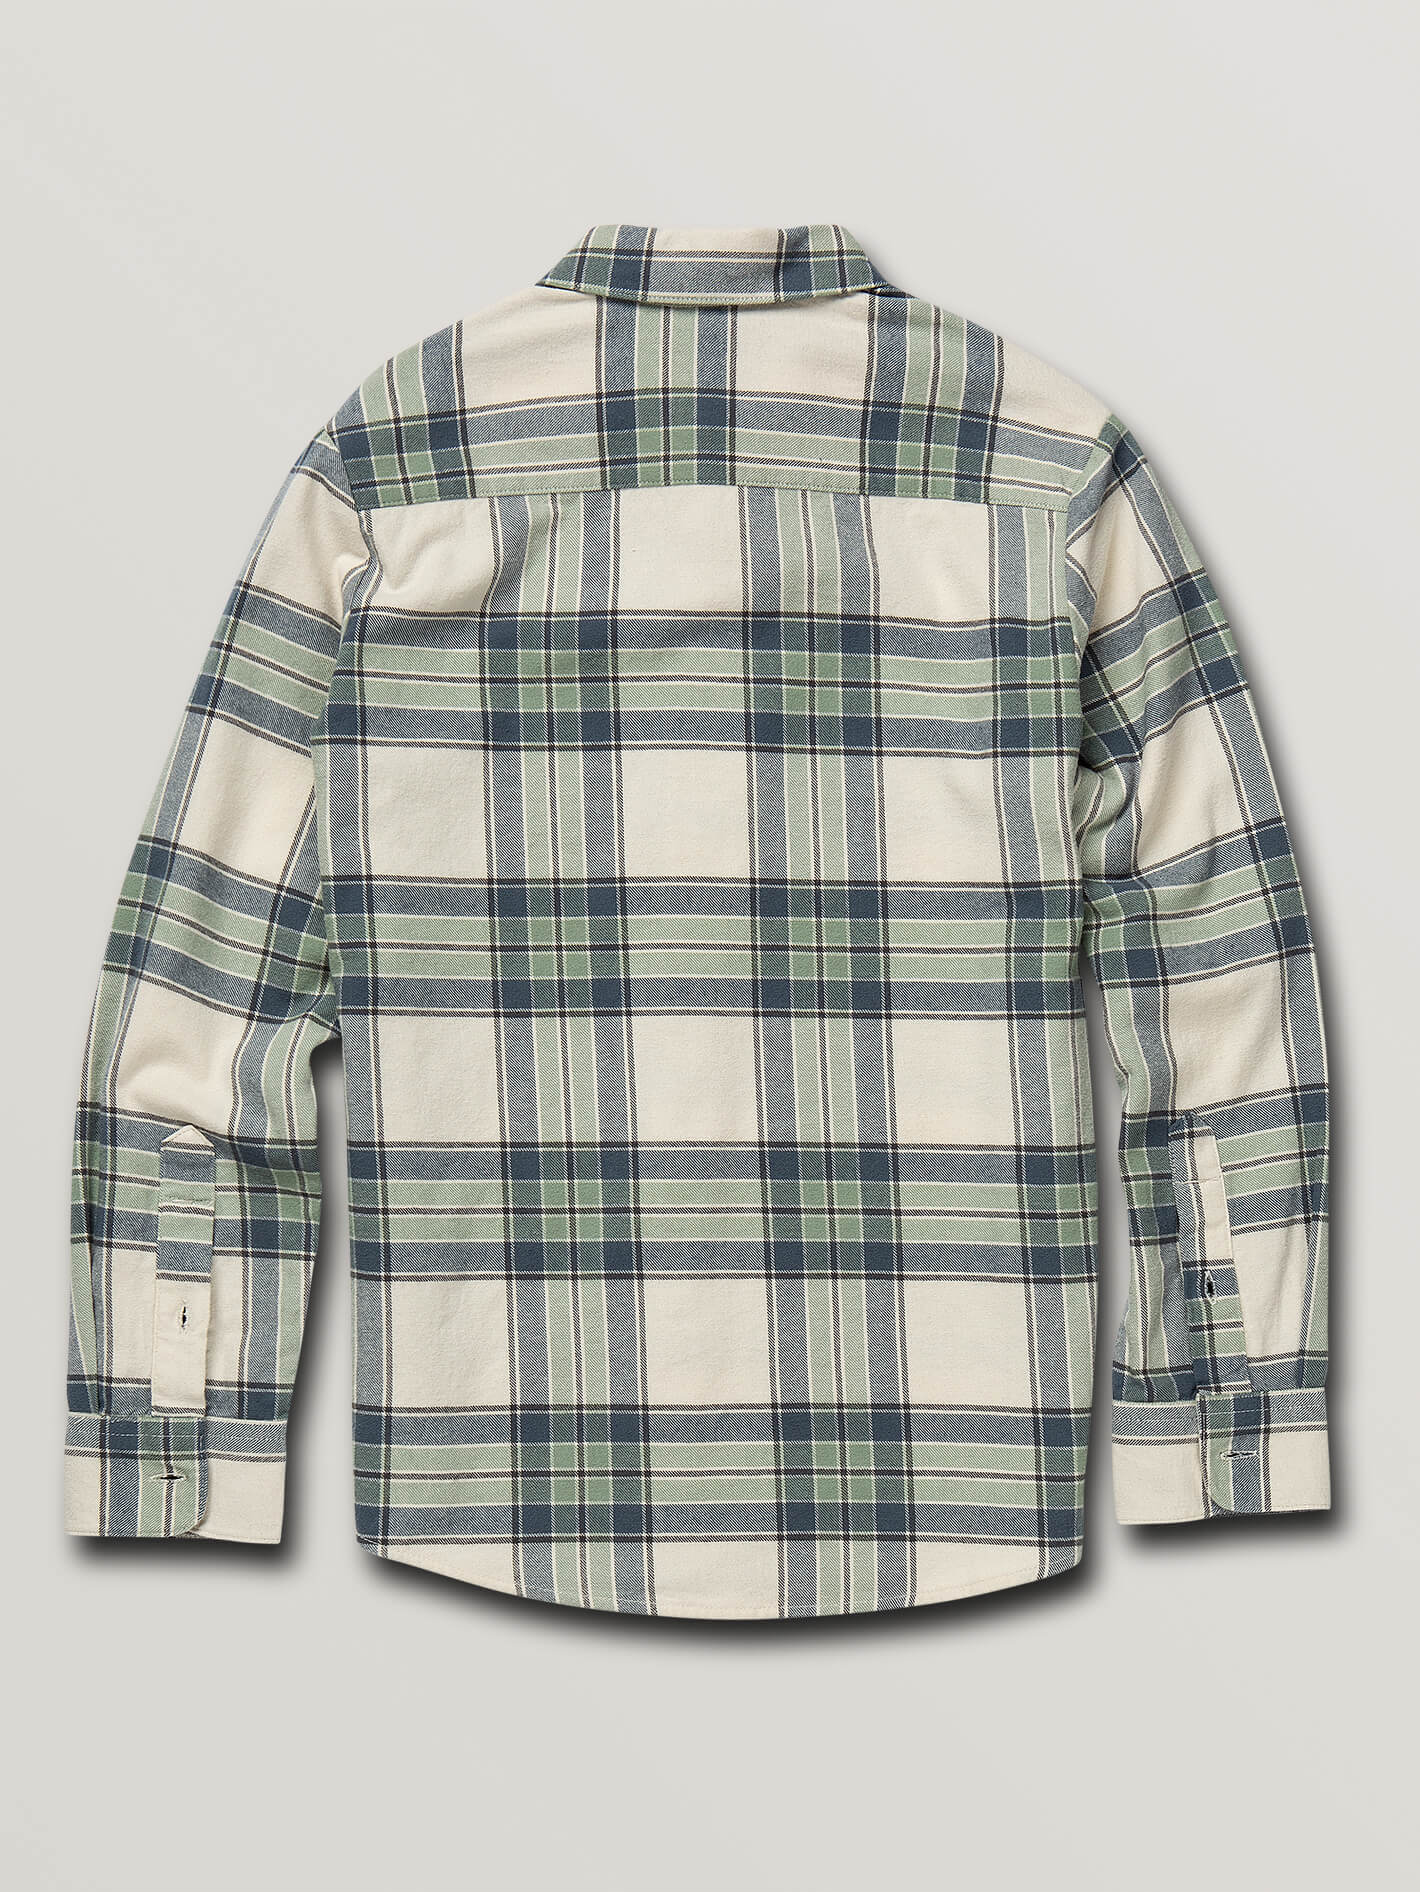 786bf2c65 Big Boys Caden Plaid Long Sleeve Flannel - Off White in OFF WHITE -  Alternative View